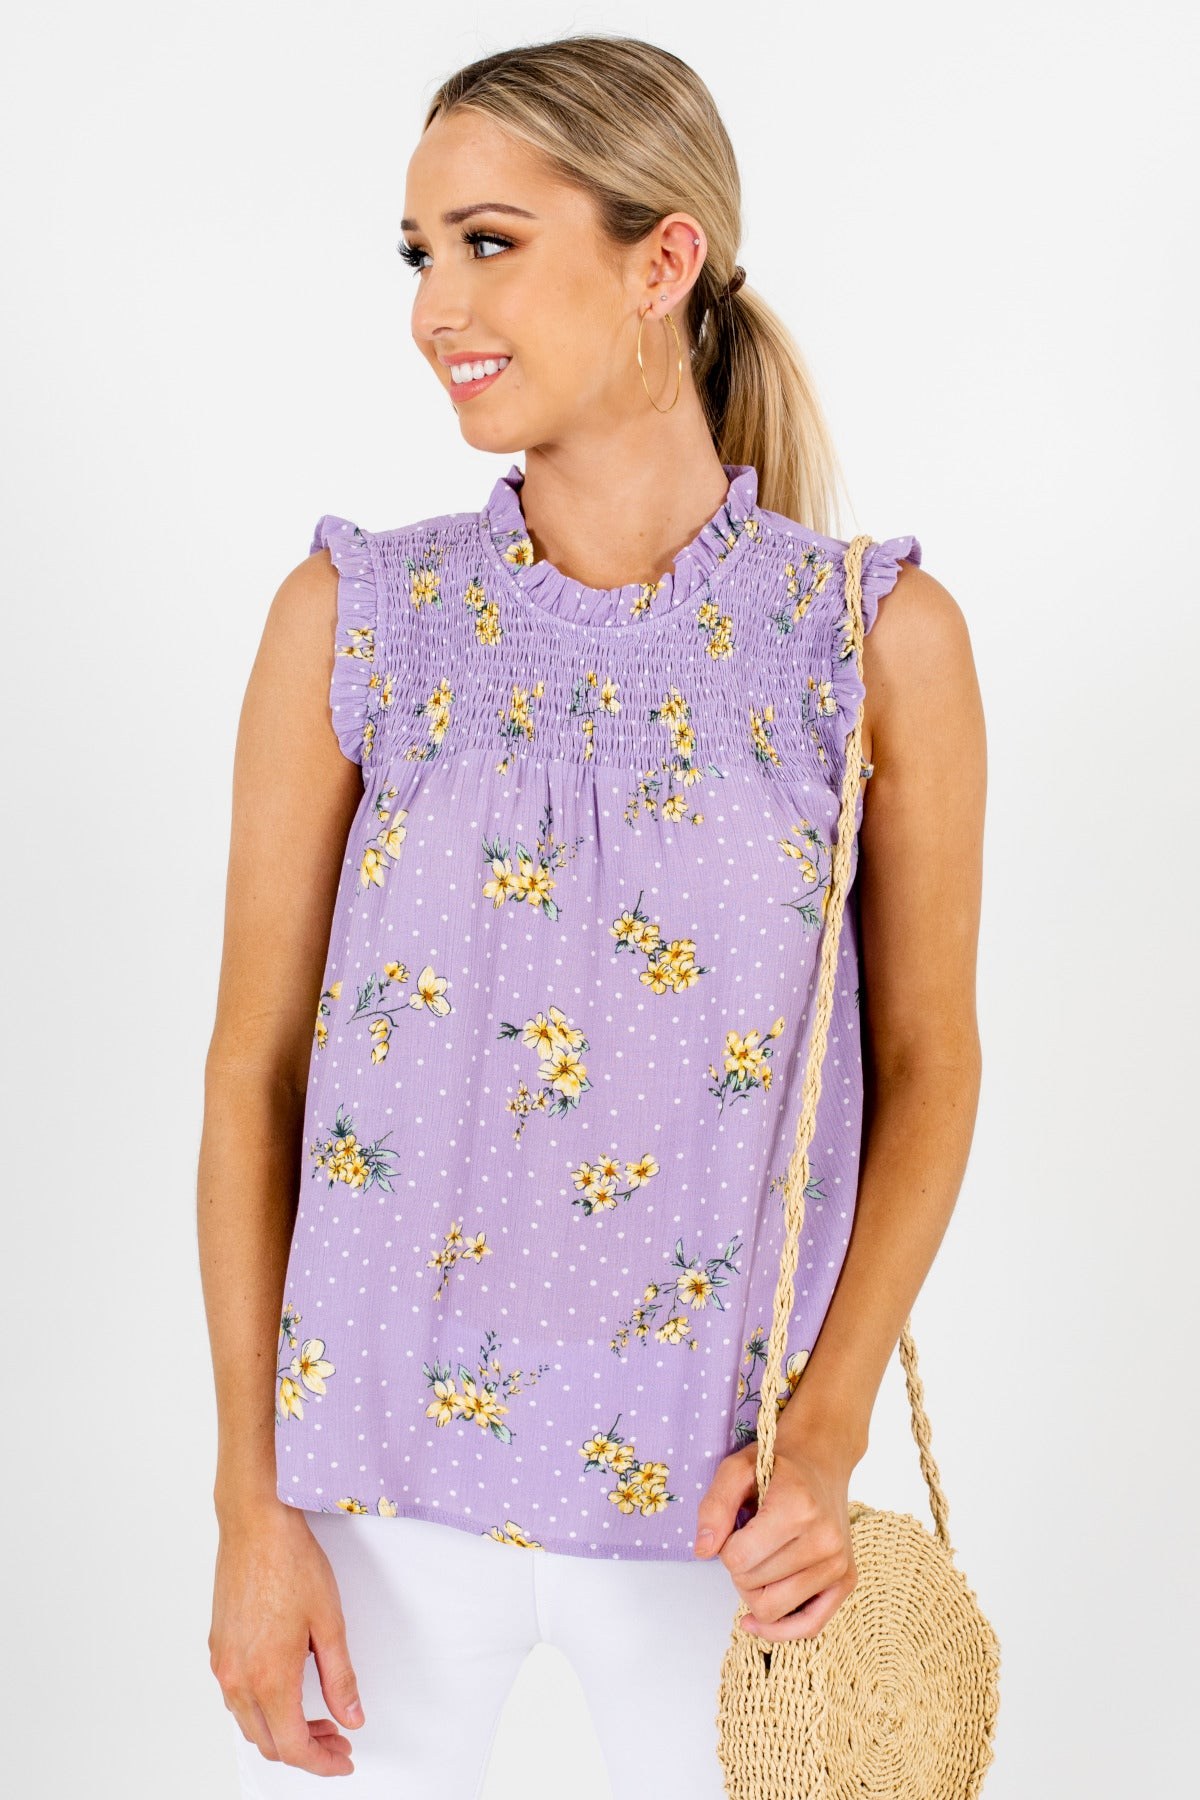 Lilac Purple Polka Dot Yellow Floral Ruffle Smocked Tops Boutique